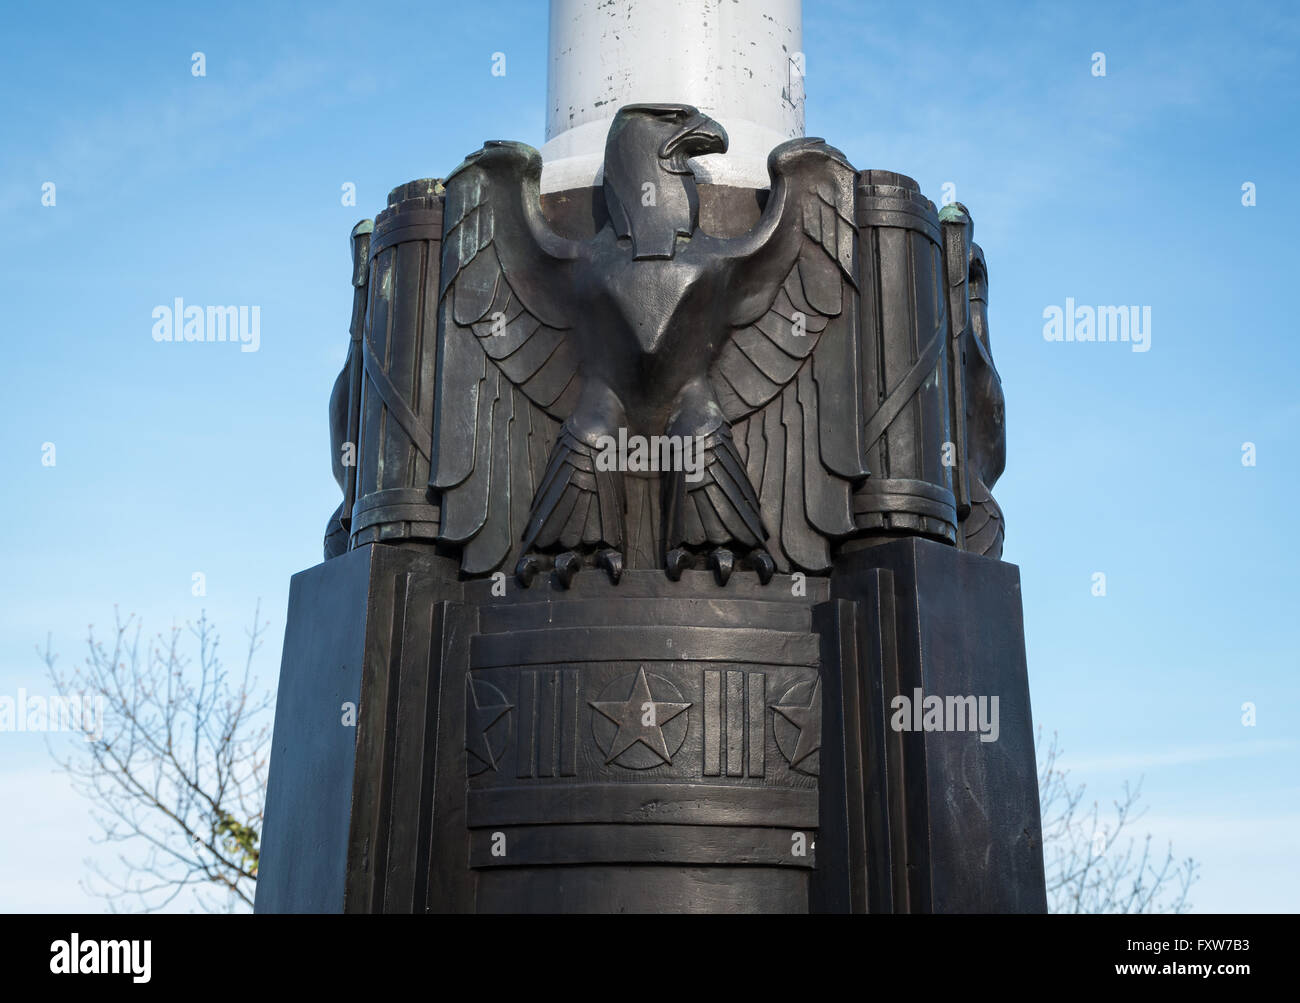 American Bald Eagle emblem cast in bronze at the base of a flagstaff pedestal with stars and stripes symbols in - Stock Image